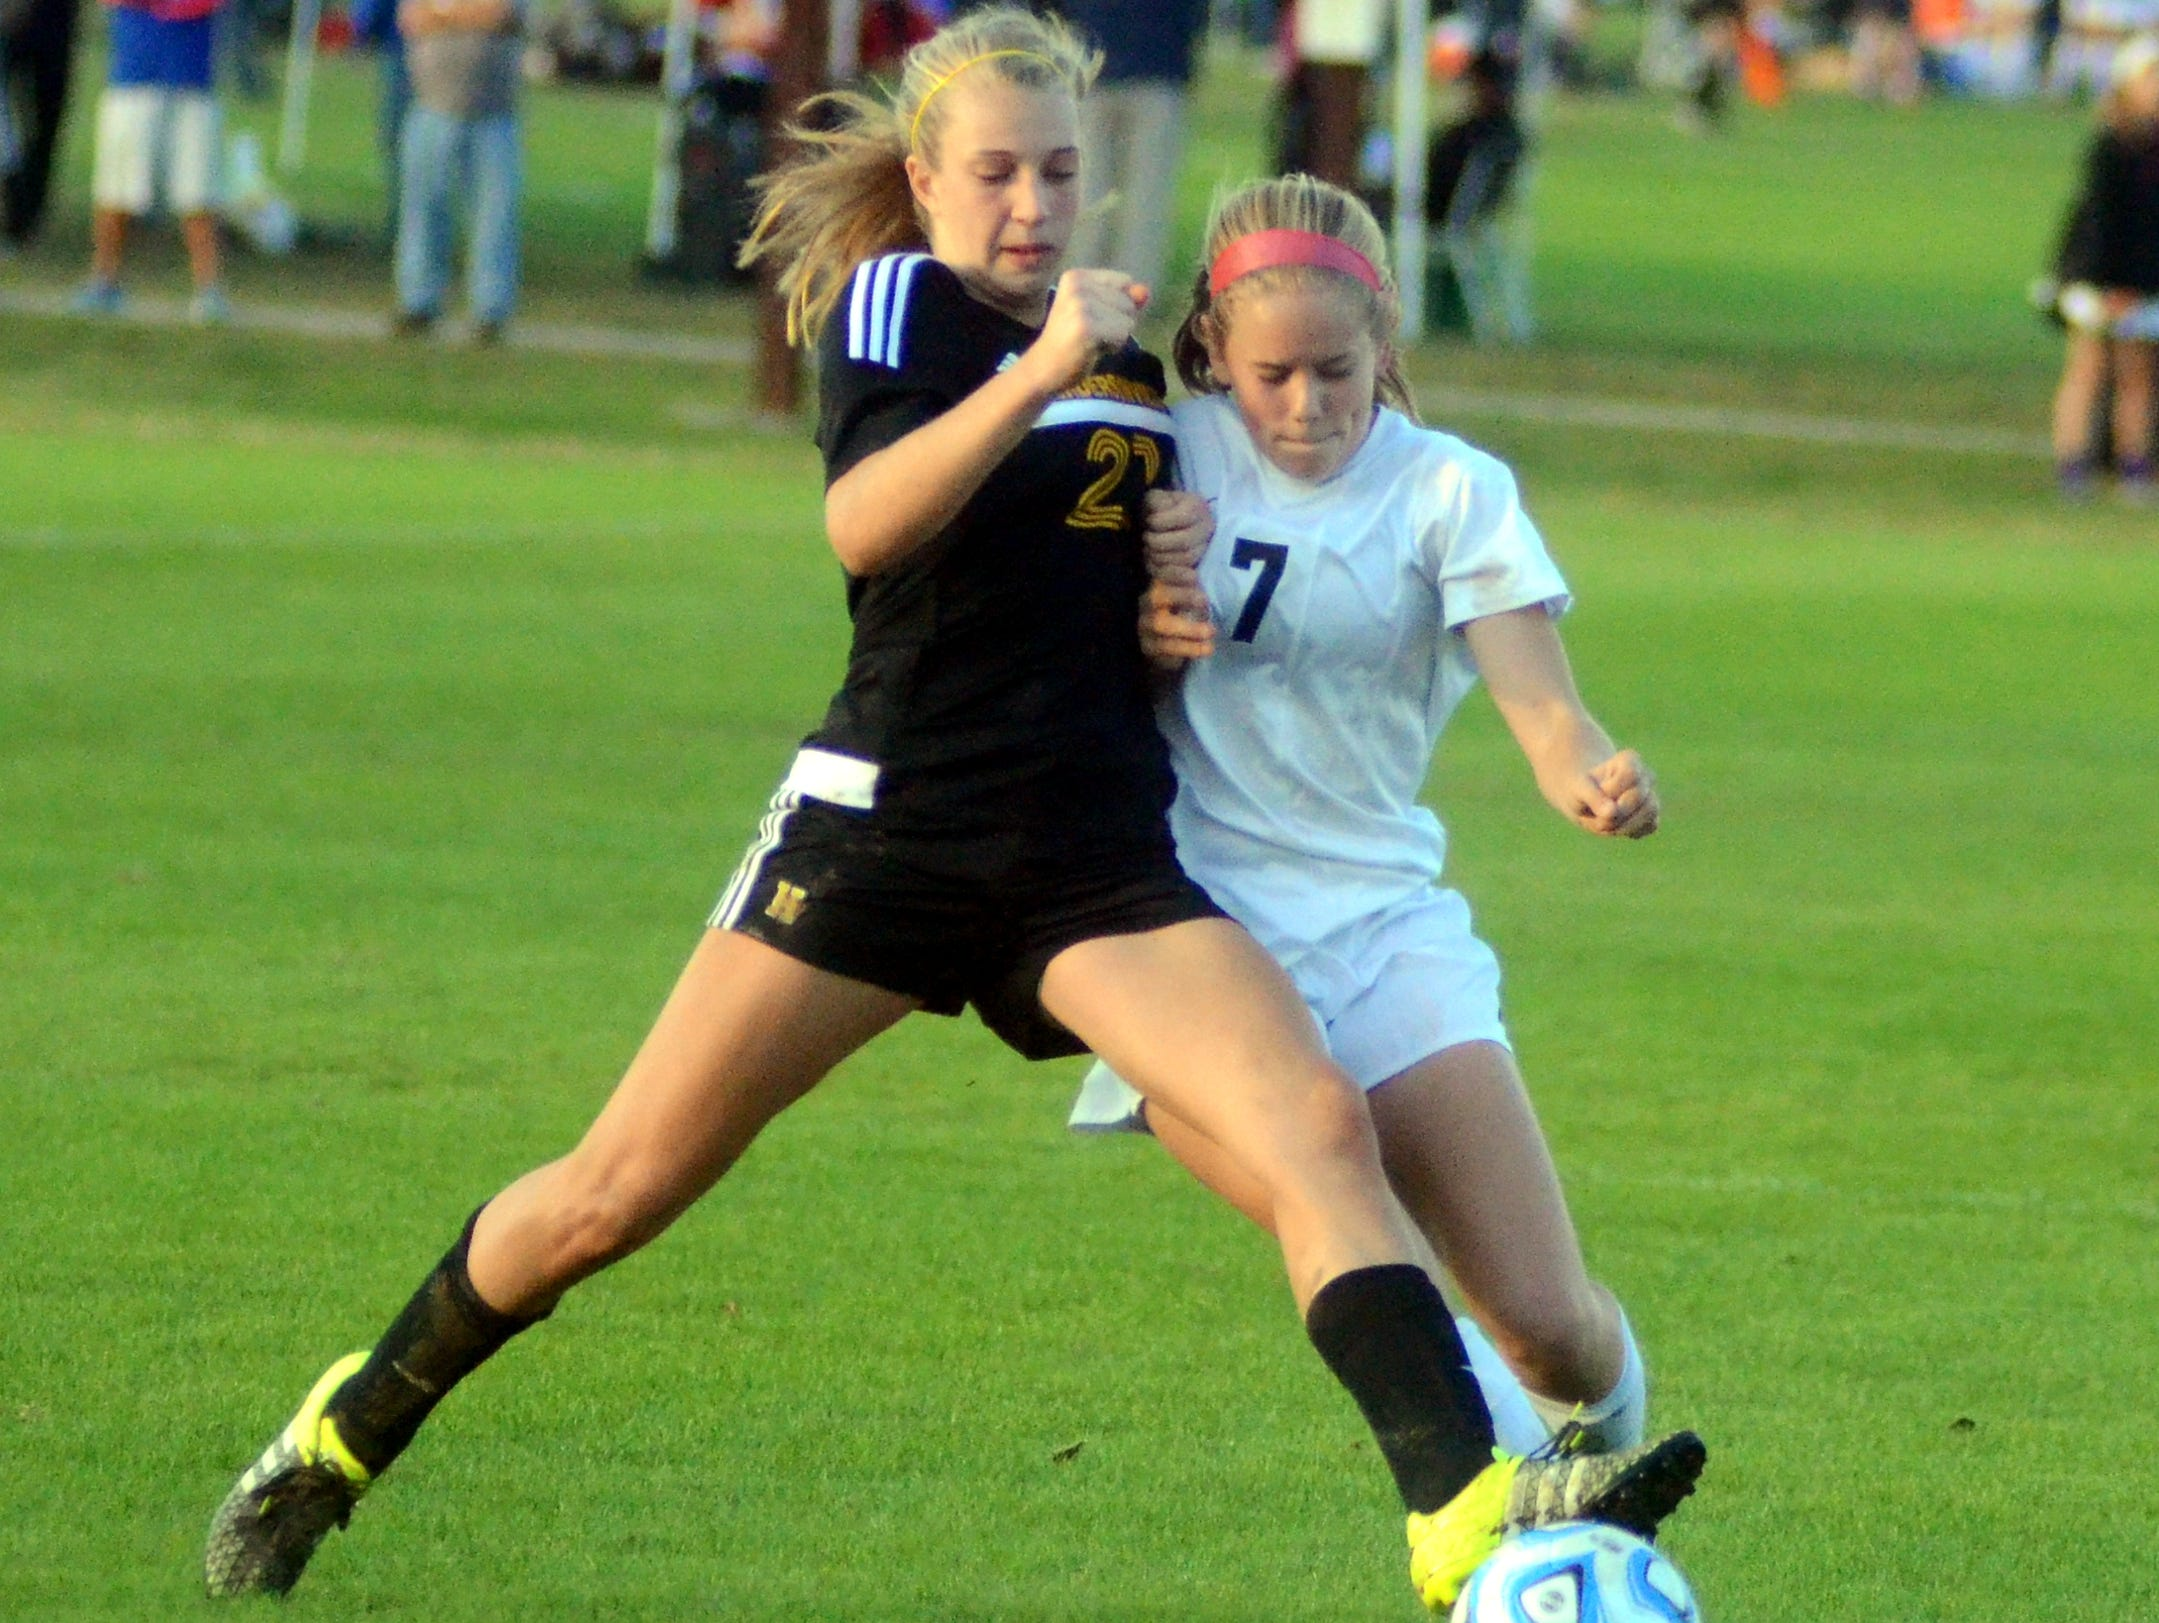 Hendersonville sophomore Brooke Long (21) battles for possession with Houston sophomore Bailey Rose during first-half action at the Class AAA State Soccer Tournament Thursday. Houston won 5-0.